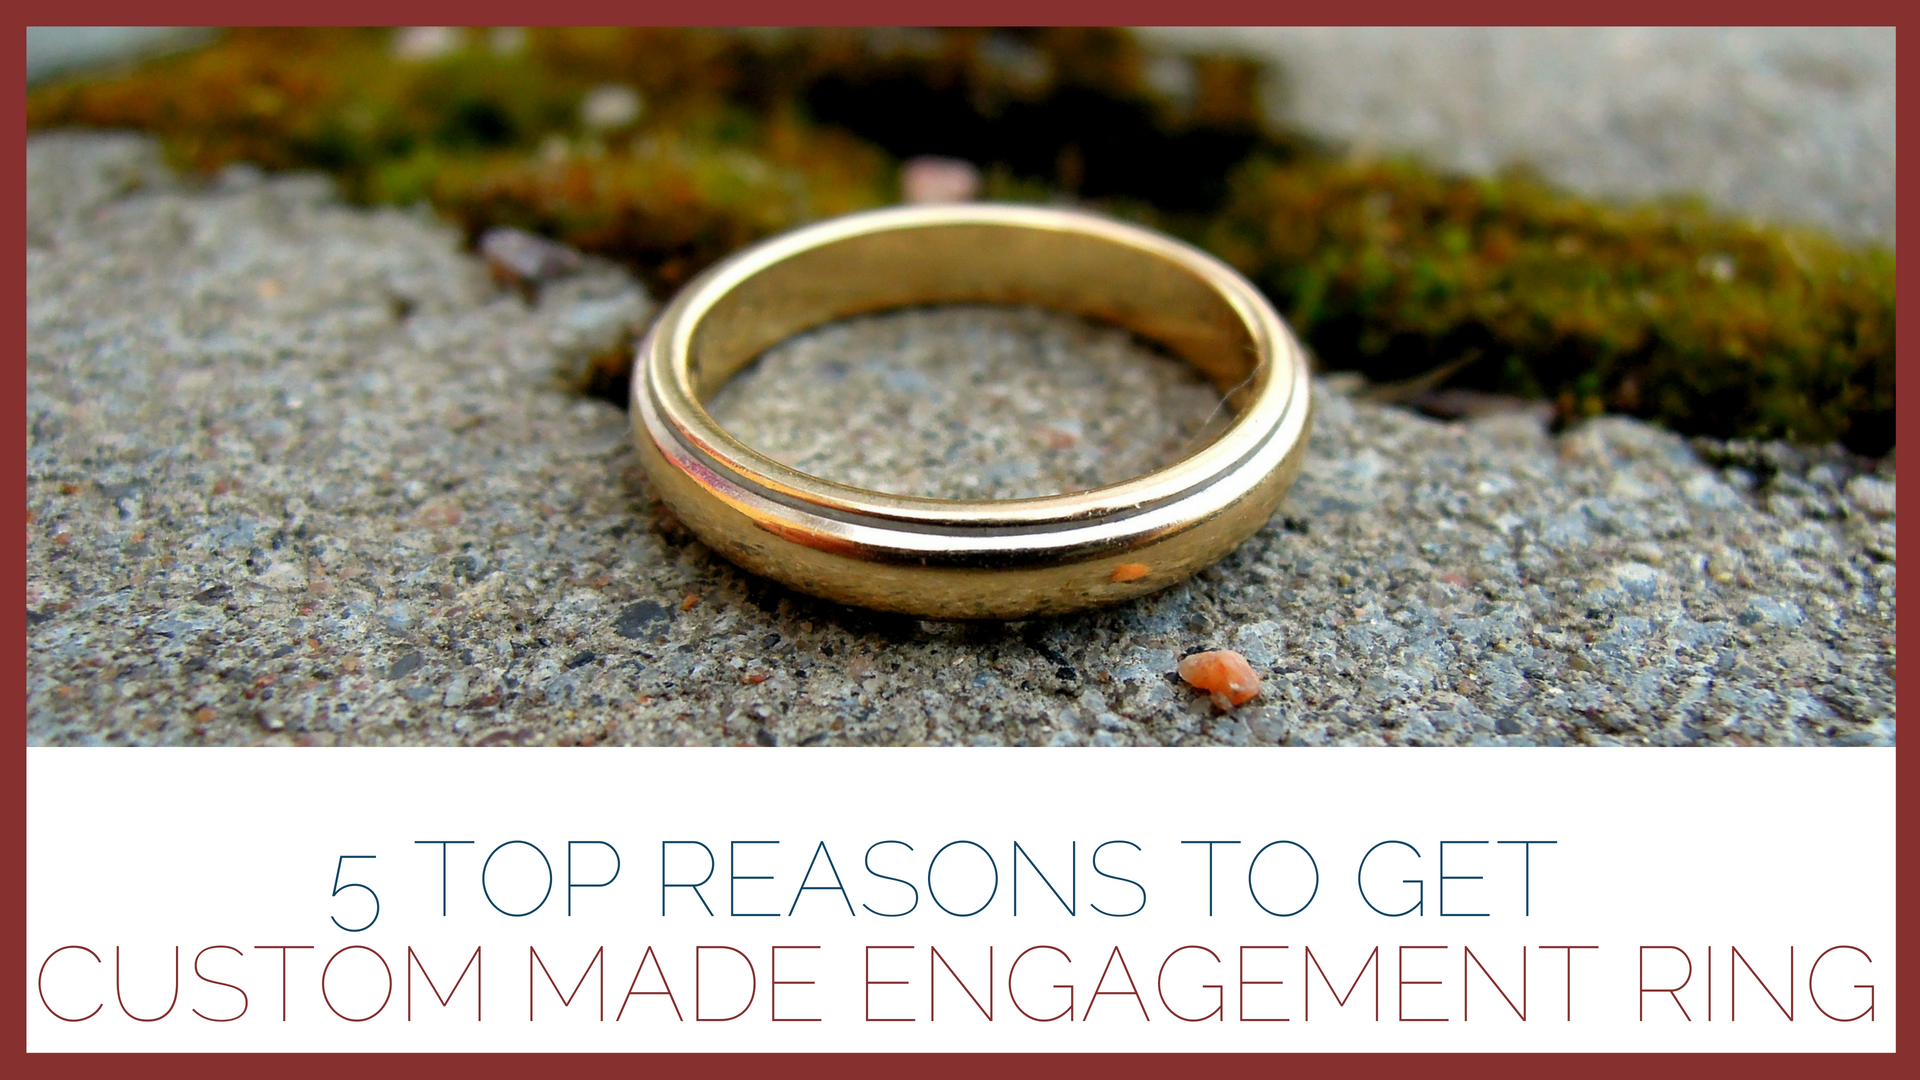 5 Top Reasons to Get Custom Made Engagement Ring